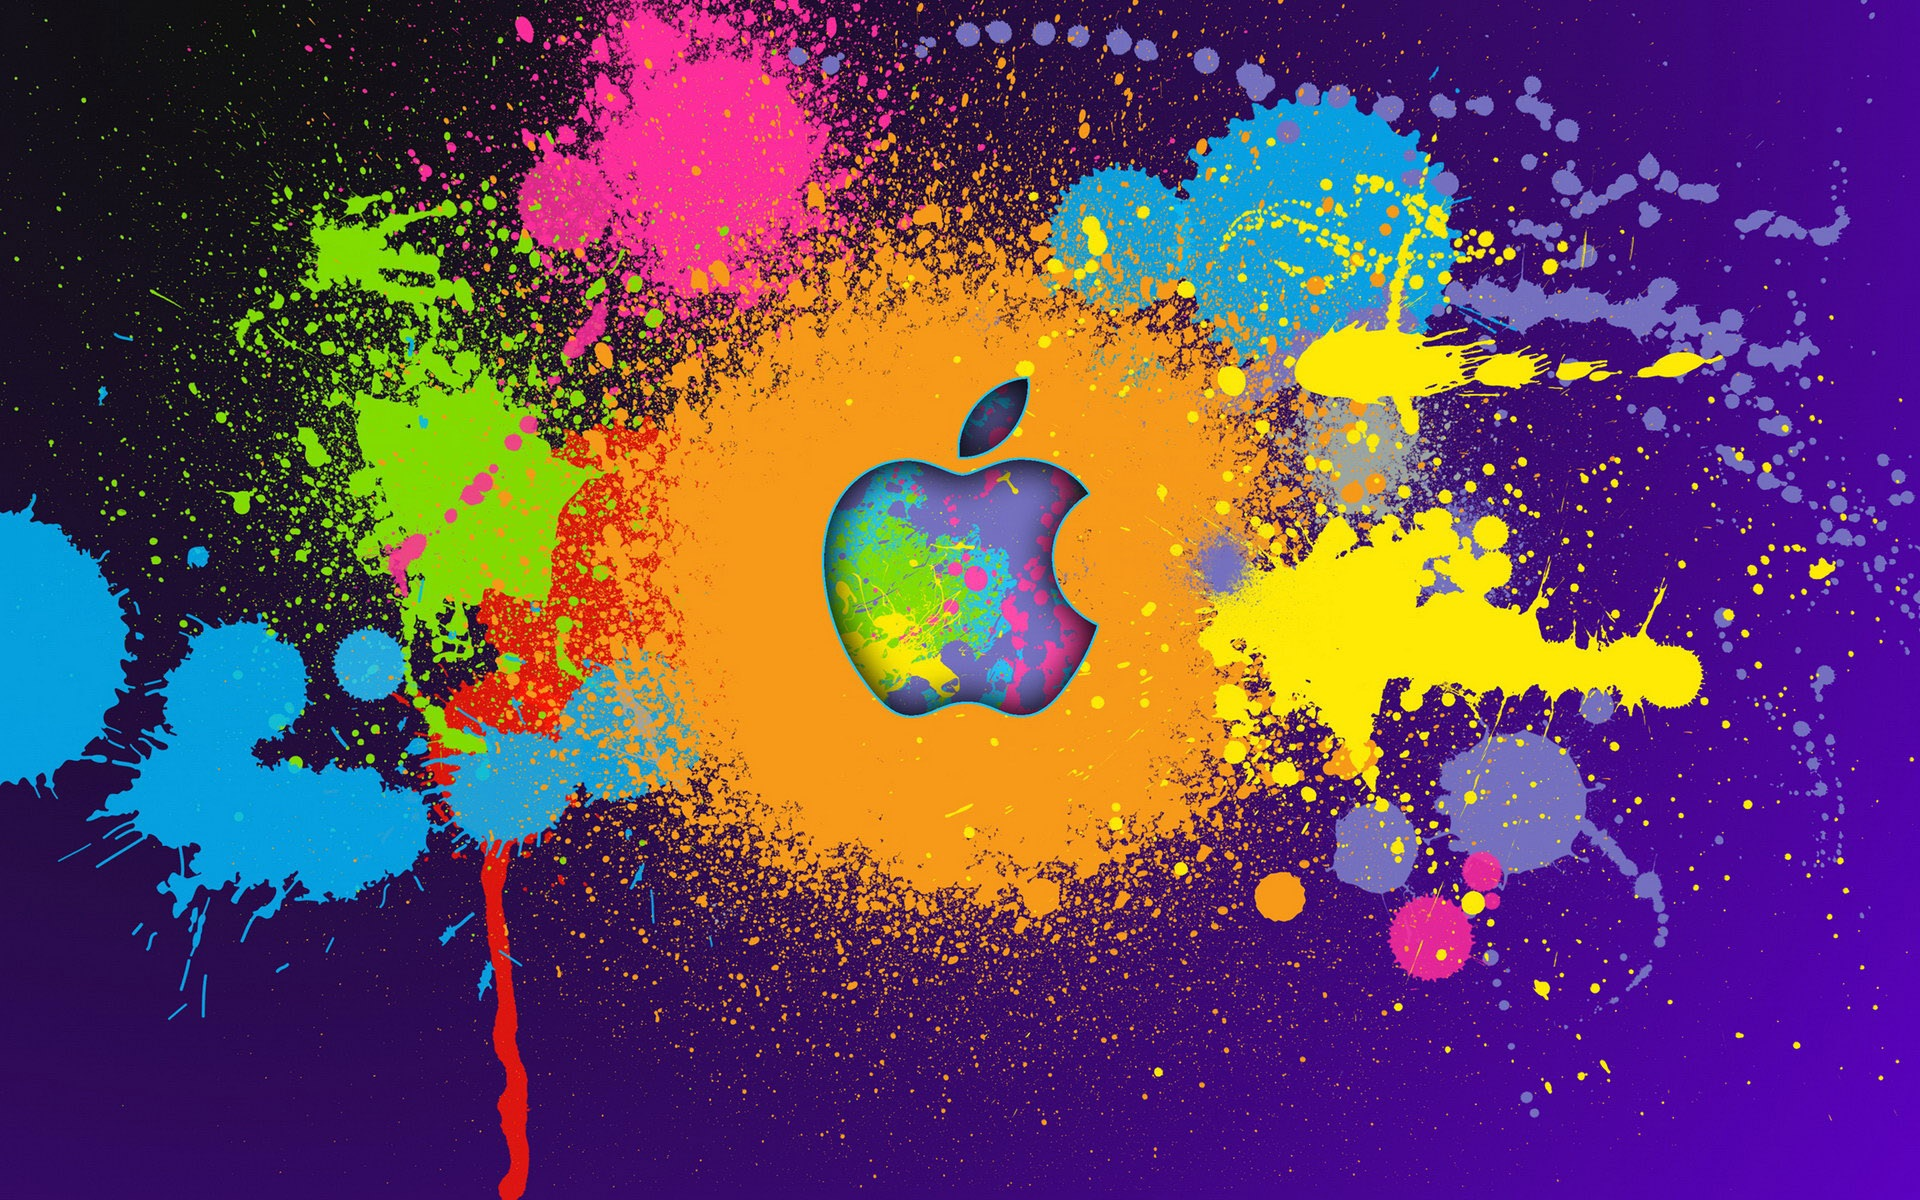 Hd Wallpapers Of Ipad A: Apple Malen Bunte 1920x1200 HD Hintergrundbilder, HD, Bild